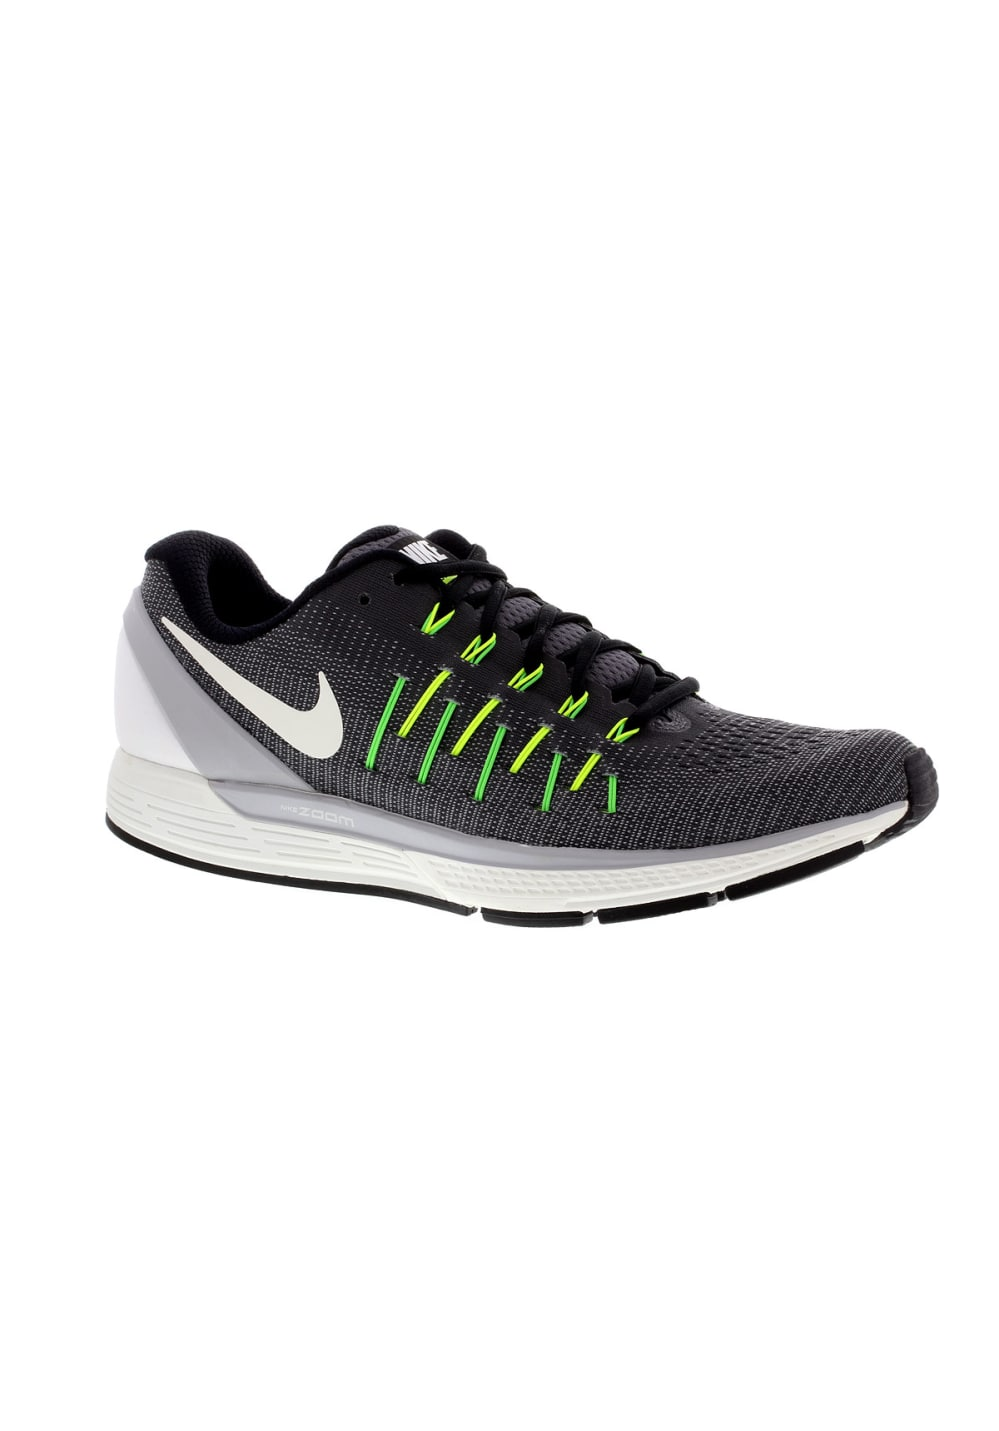 online store e6491 b0655 Nike Air Zoom Odyssey 2 - Running shoes for Men - Grey